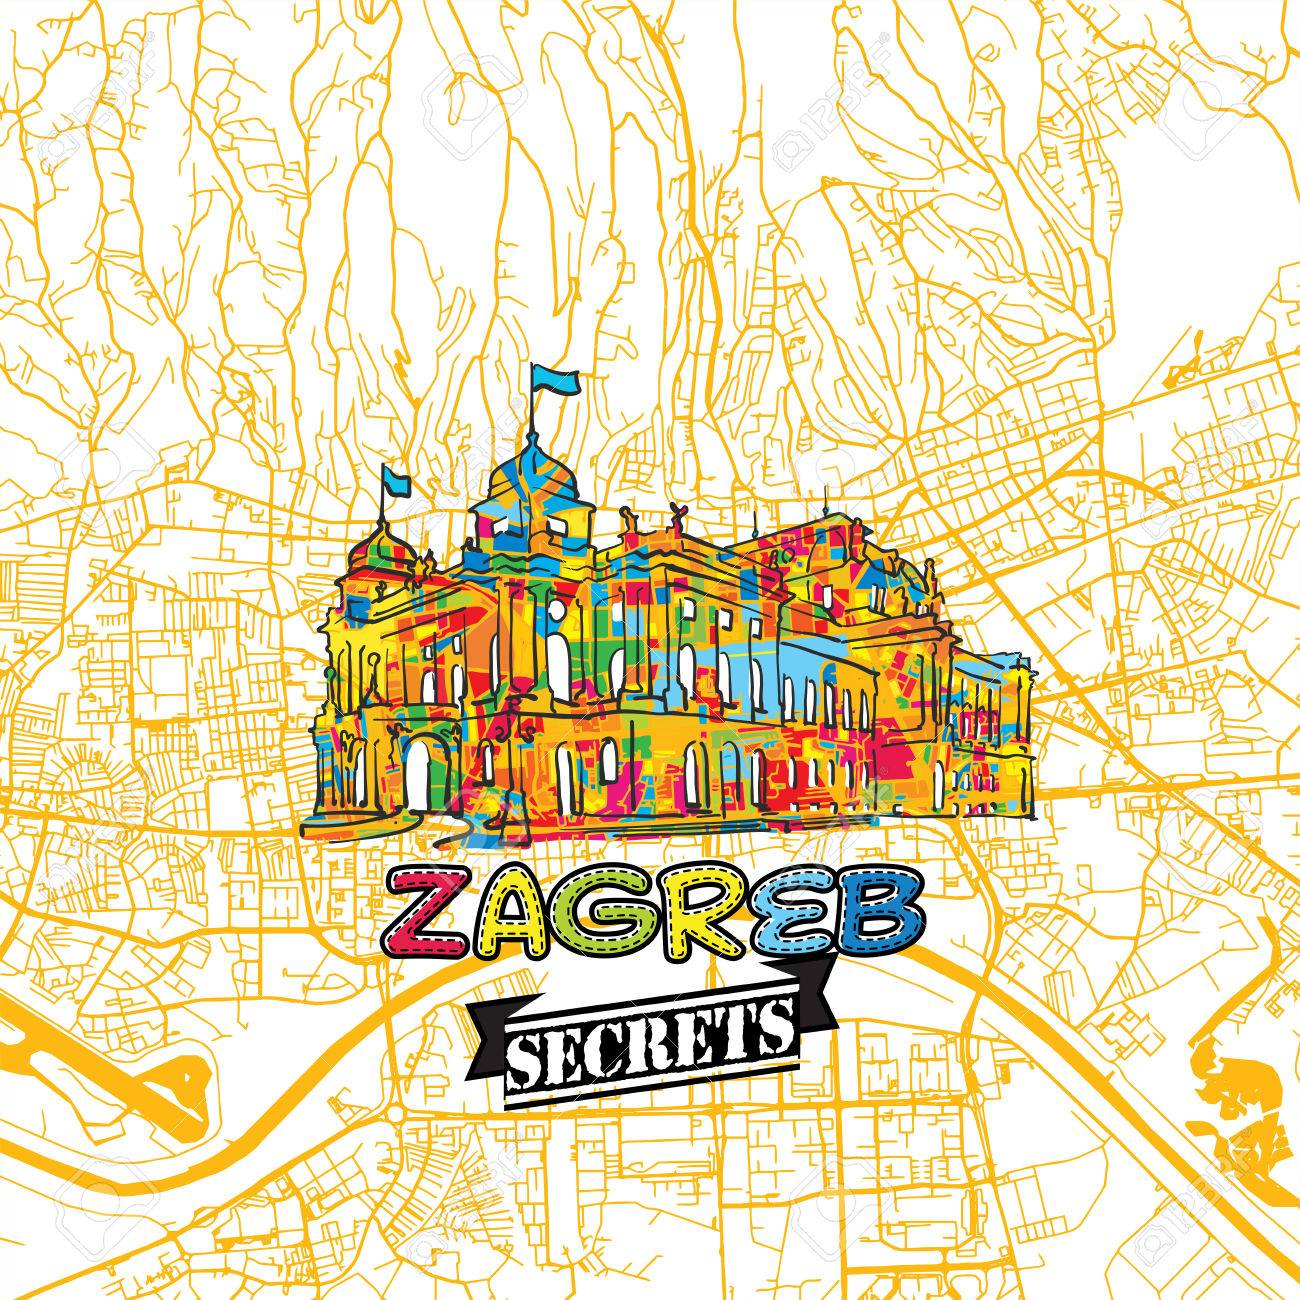 1300x1300 Zagreb Travel Secrets Art Map For Mapping Experts And Travel